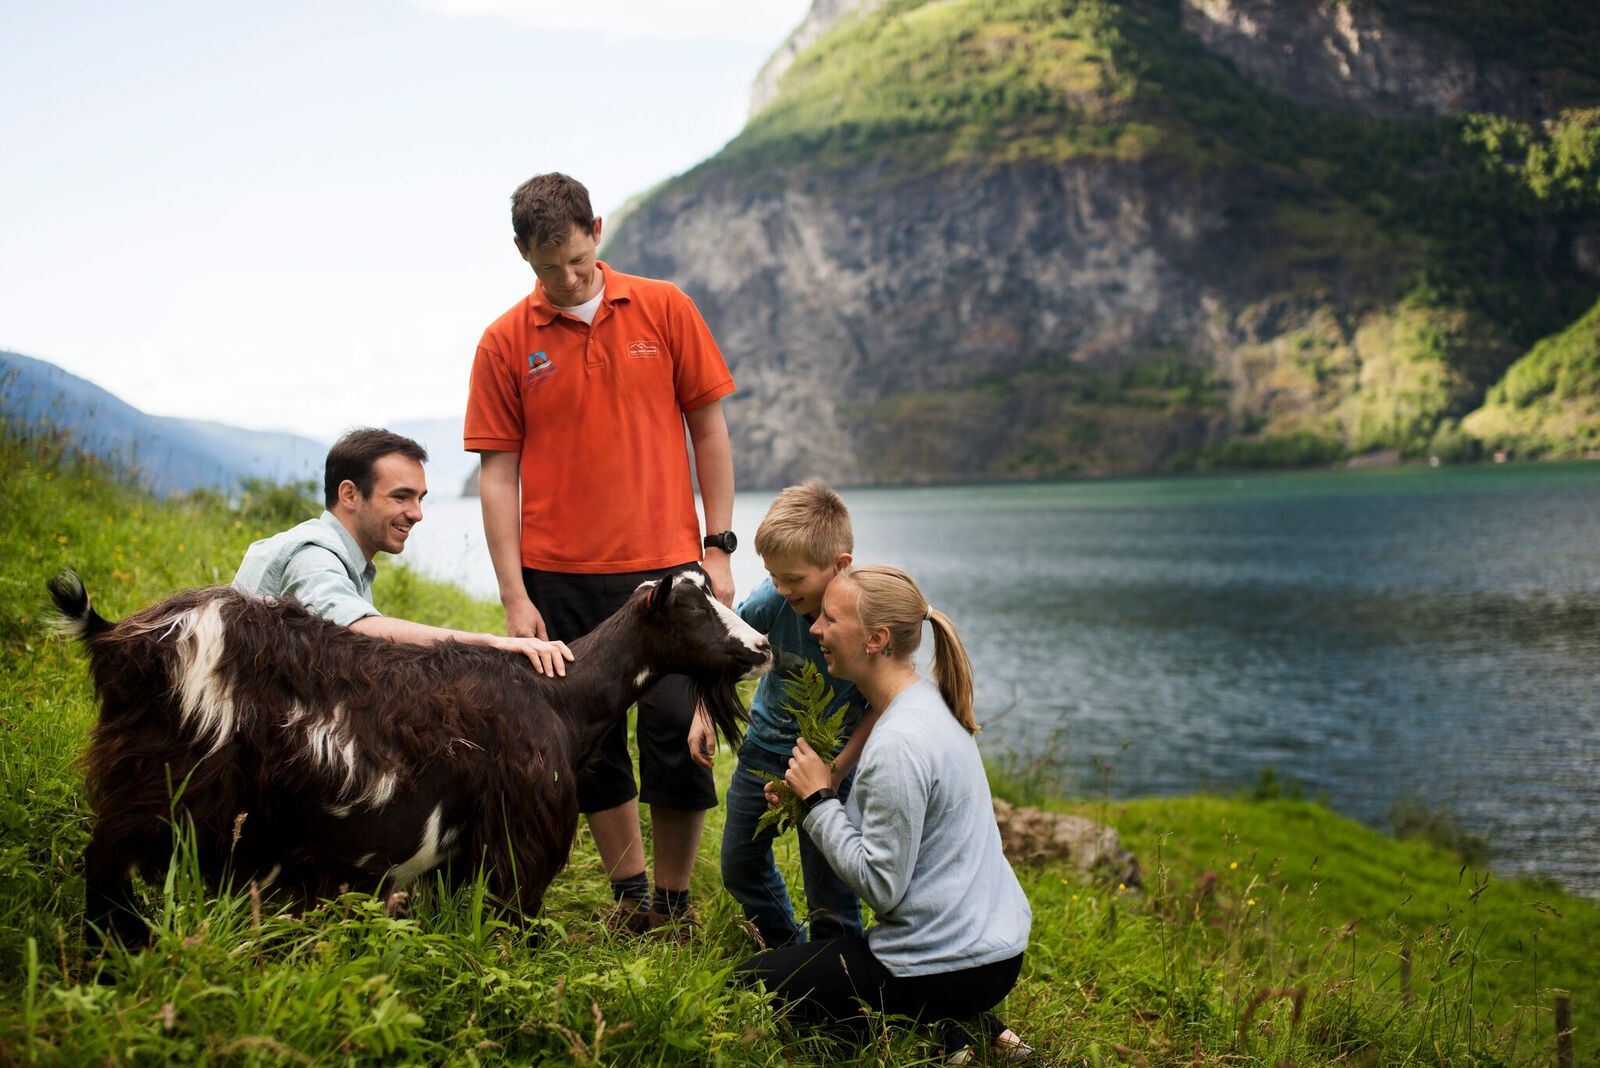 practical information - Time/period: 4 hour roundtrip. Transportation by minivan.June 15th. 2019 - August 15th. 2019 at 10:00-14:00 every day.Meet: 15 min. prior to departure in FjordSafari reception.Price: Adults NOK 1090,- / Children NOK 790,- incl. transportation, lunch and guide. Maximum 8 people.